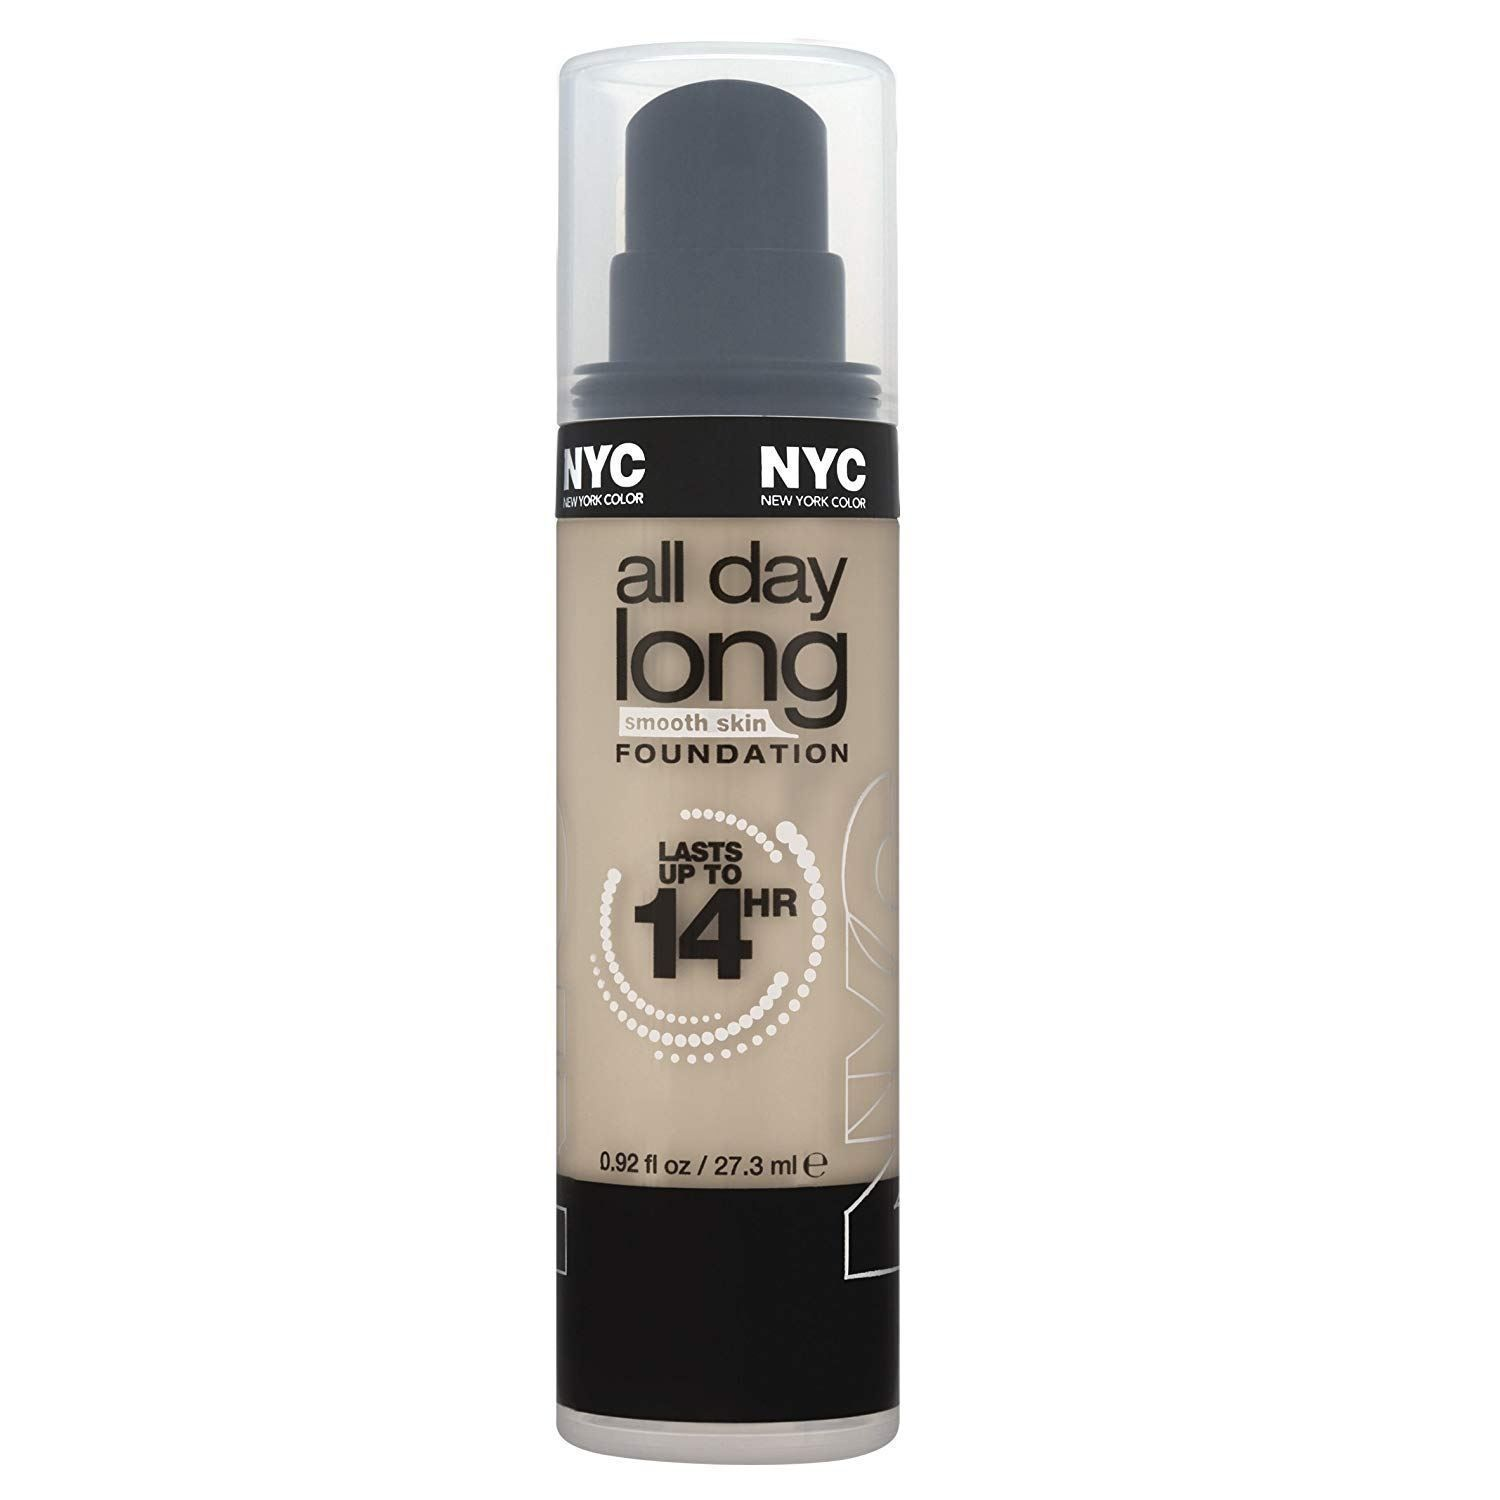 All Day Long Smooth Skin Foundation